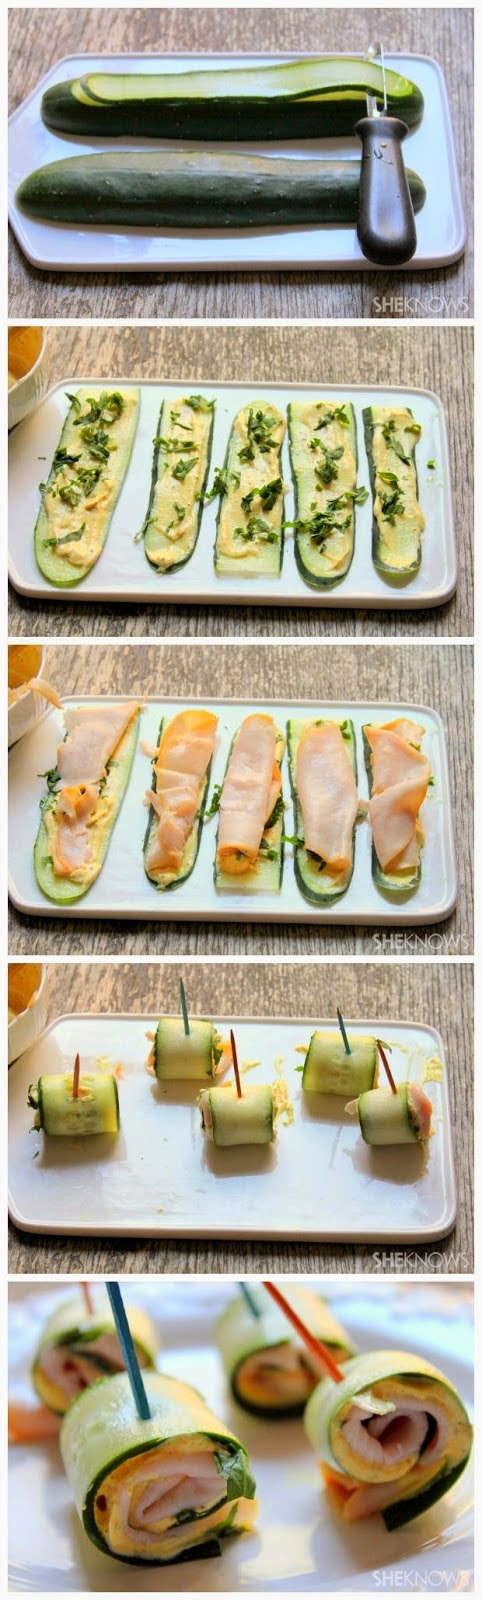 Cucumber roll-ups with Greek yogurt